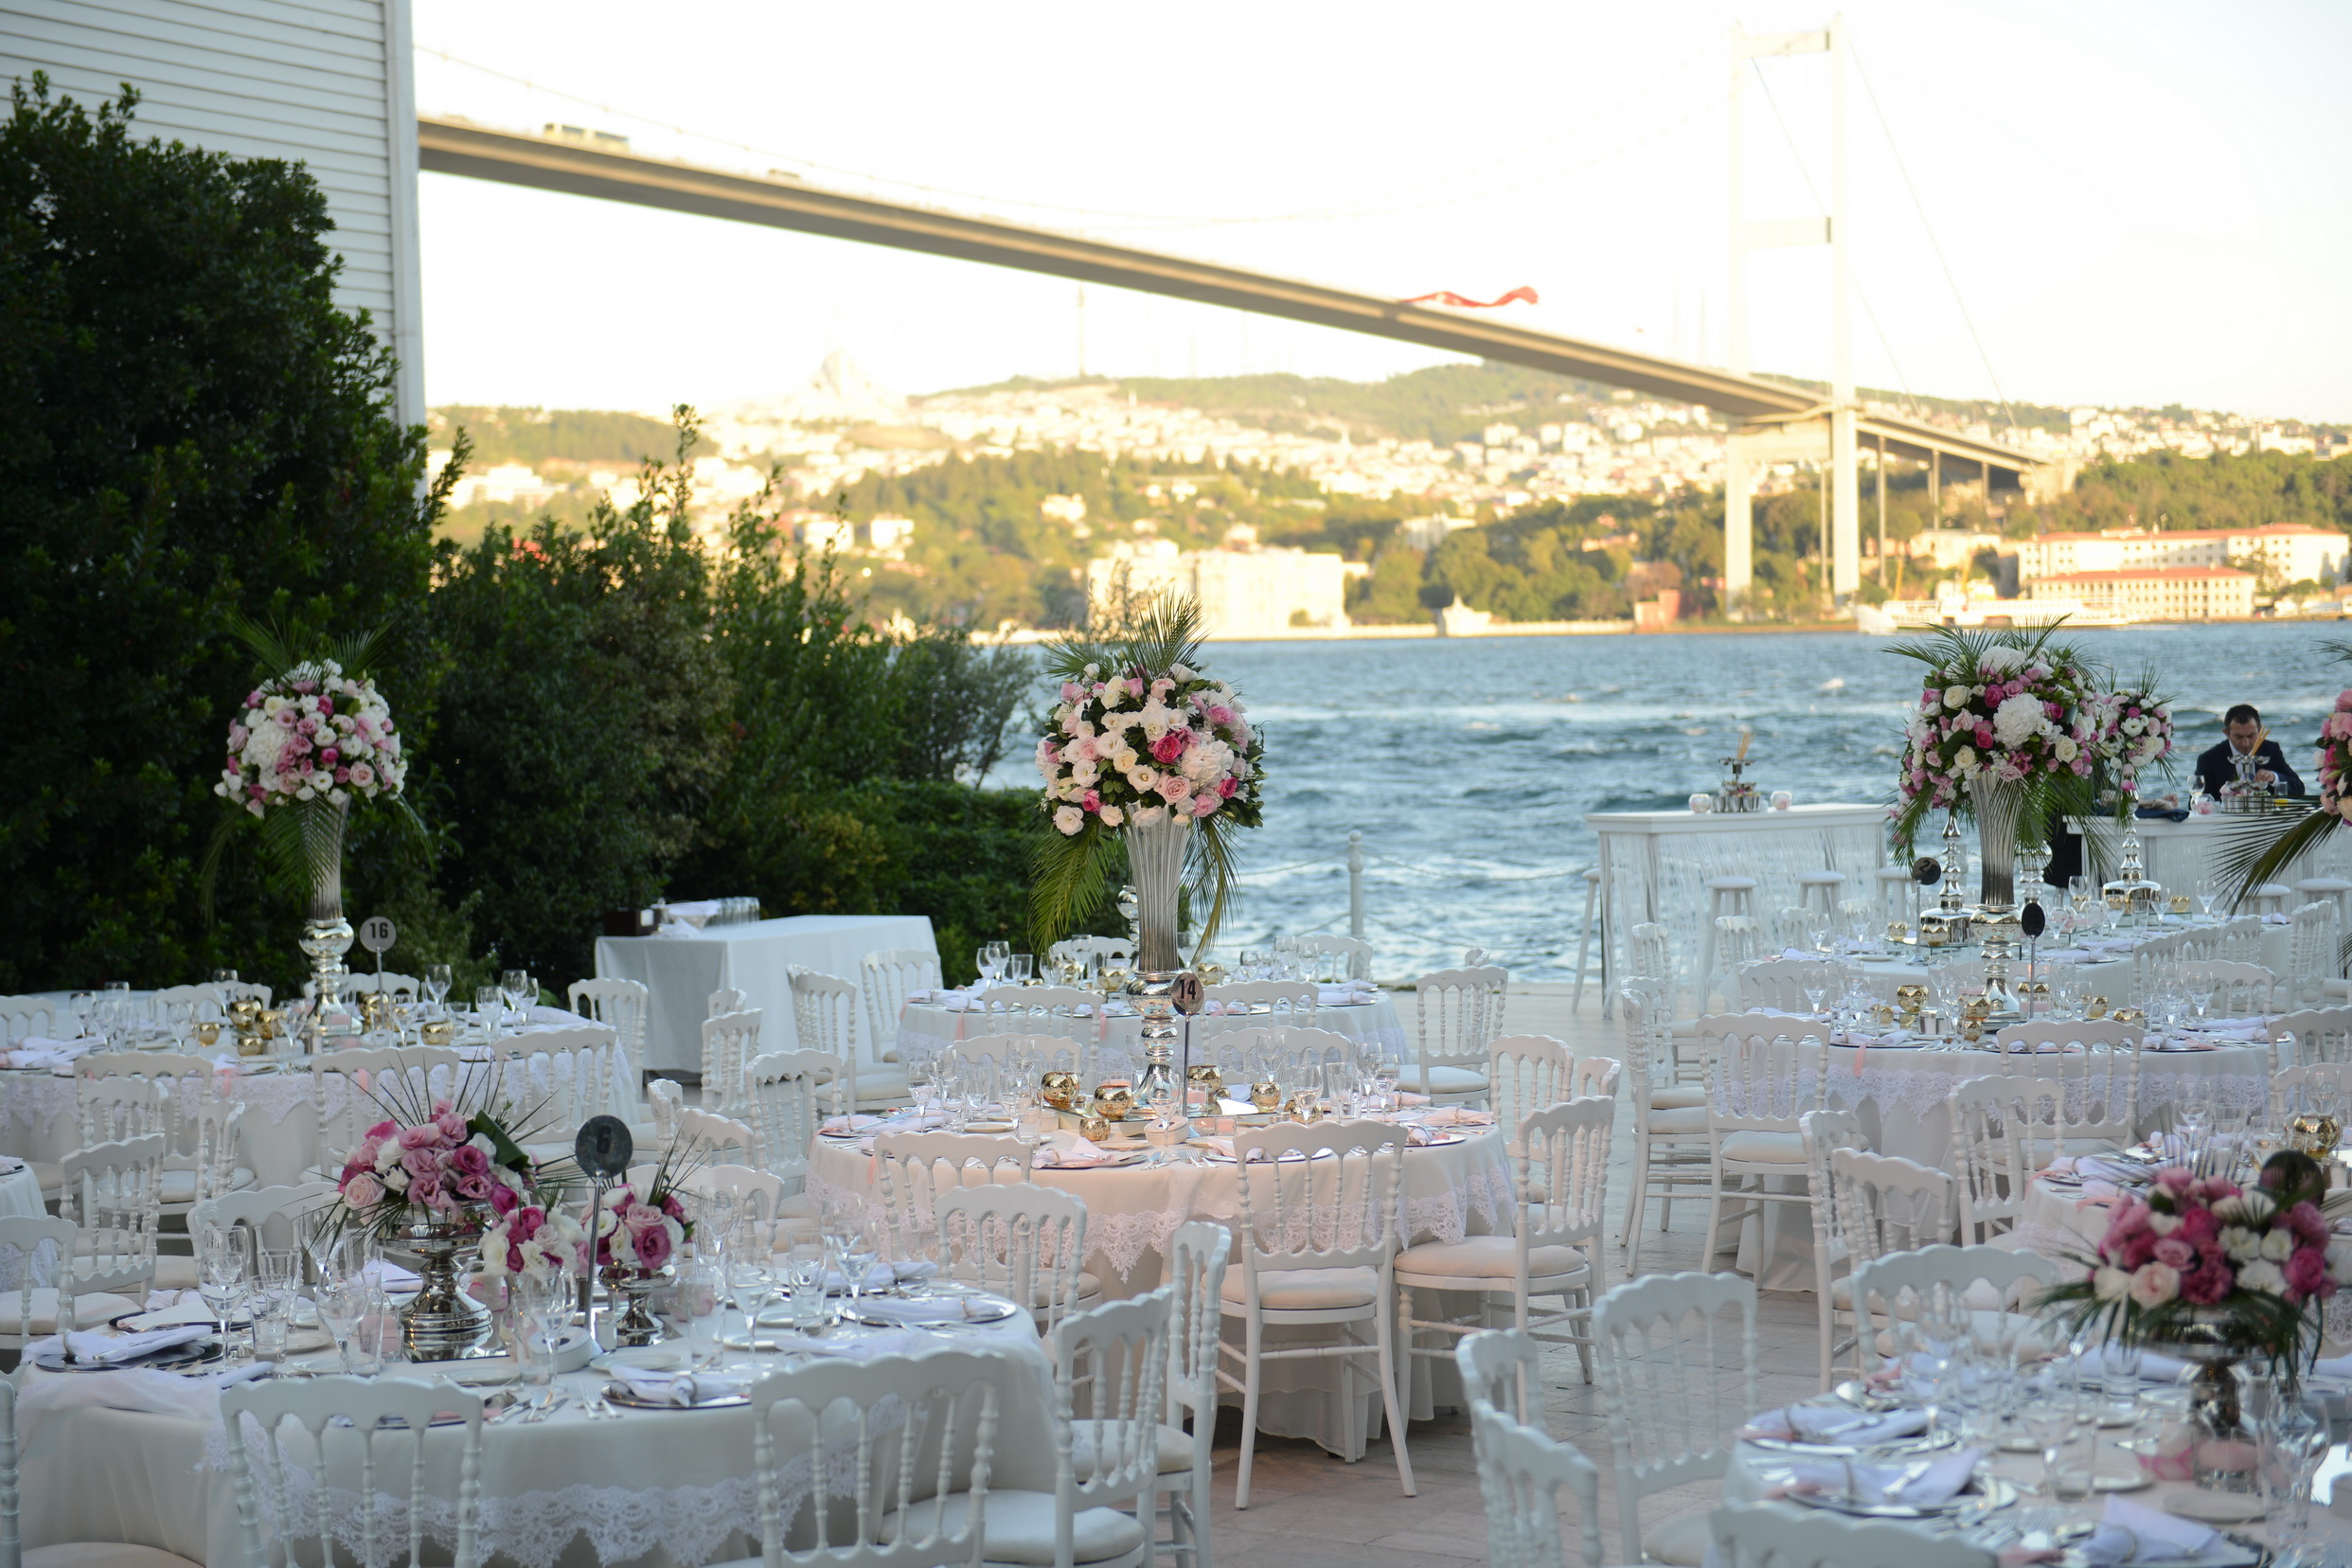 ESMA SULTAN MANSION İSTANBUL ARABİAN MİDDİLE EAST WEDDİNG